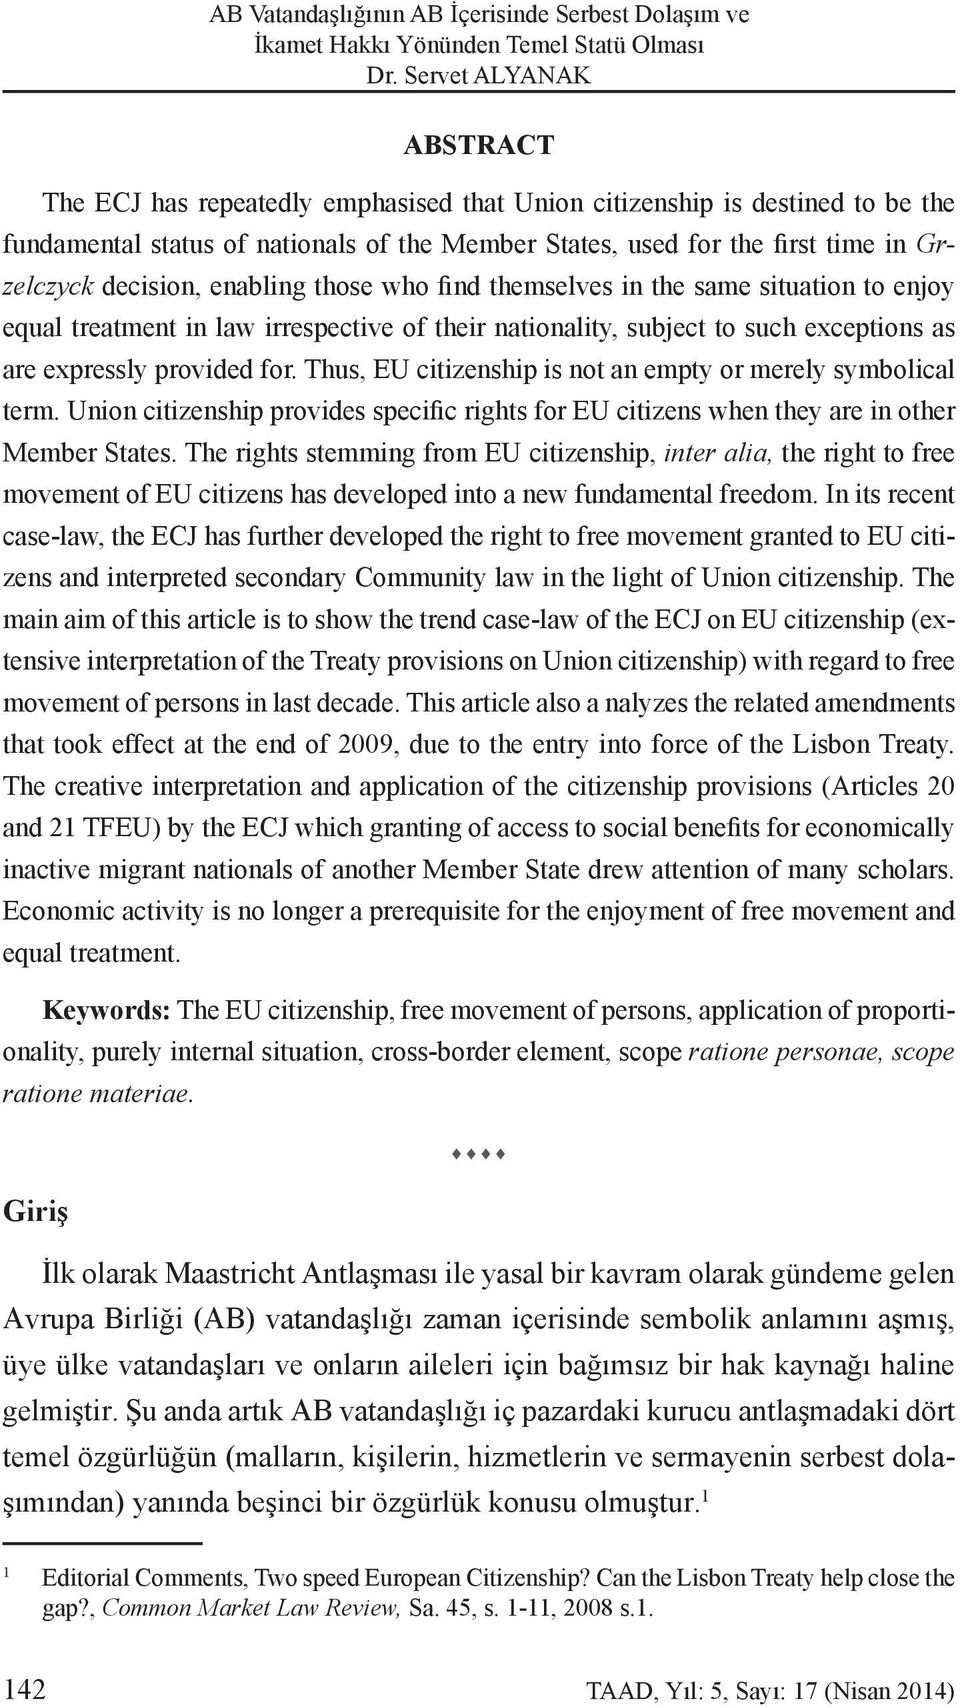 nationality, subject to such exceptions as are expressly provided for. Thus, EU citizenship is not an empty or merely symbolical term.